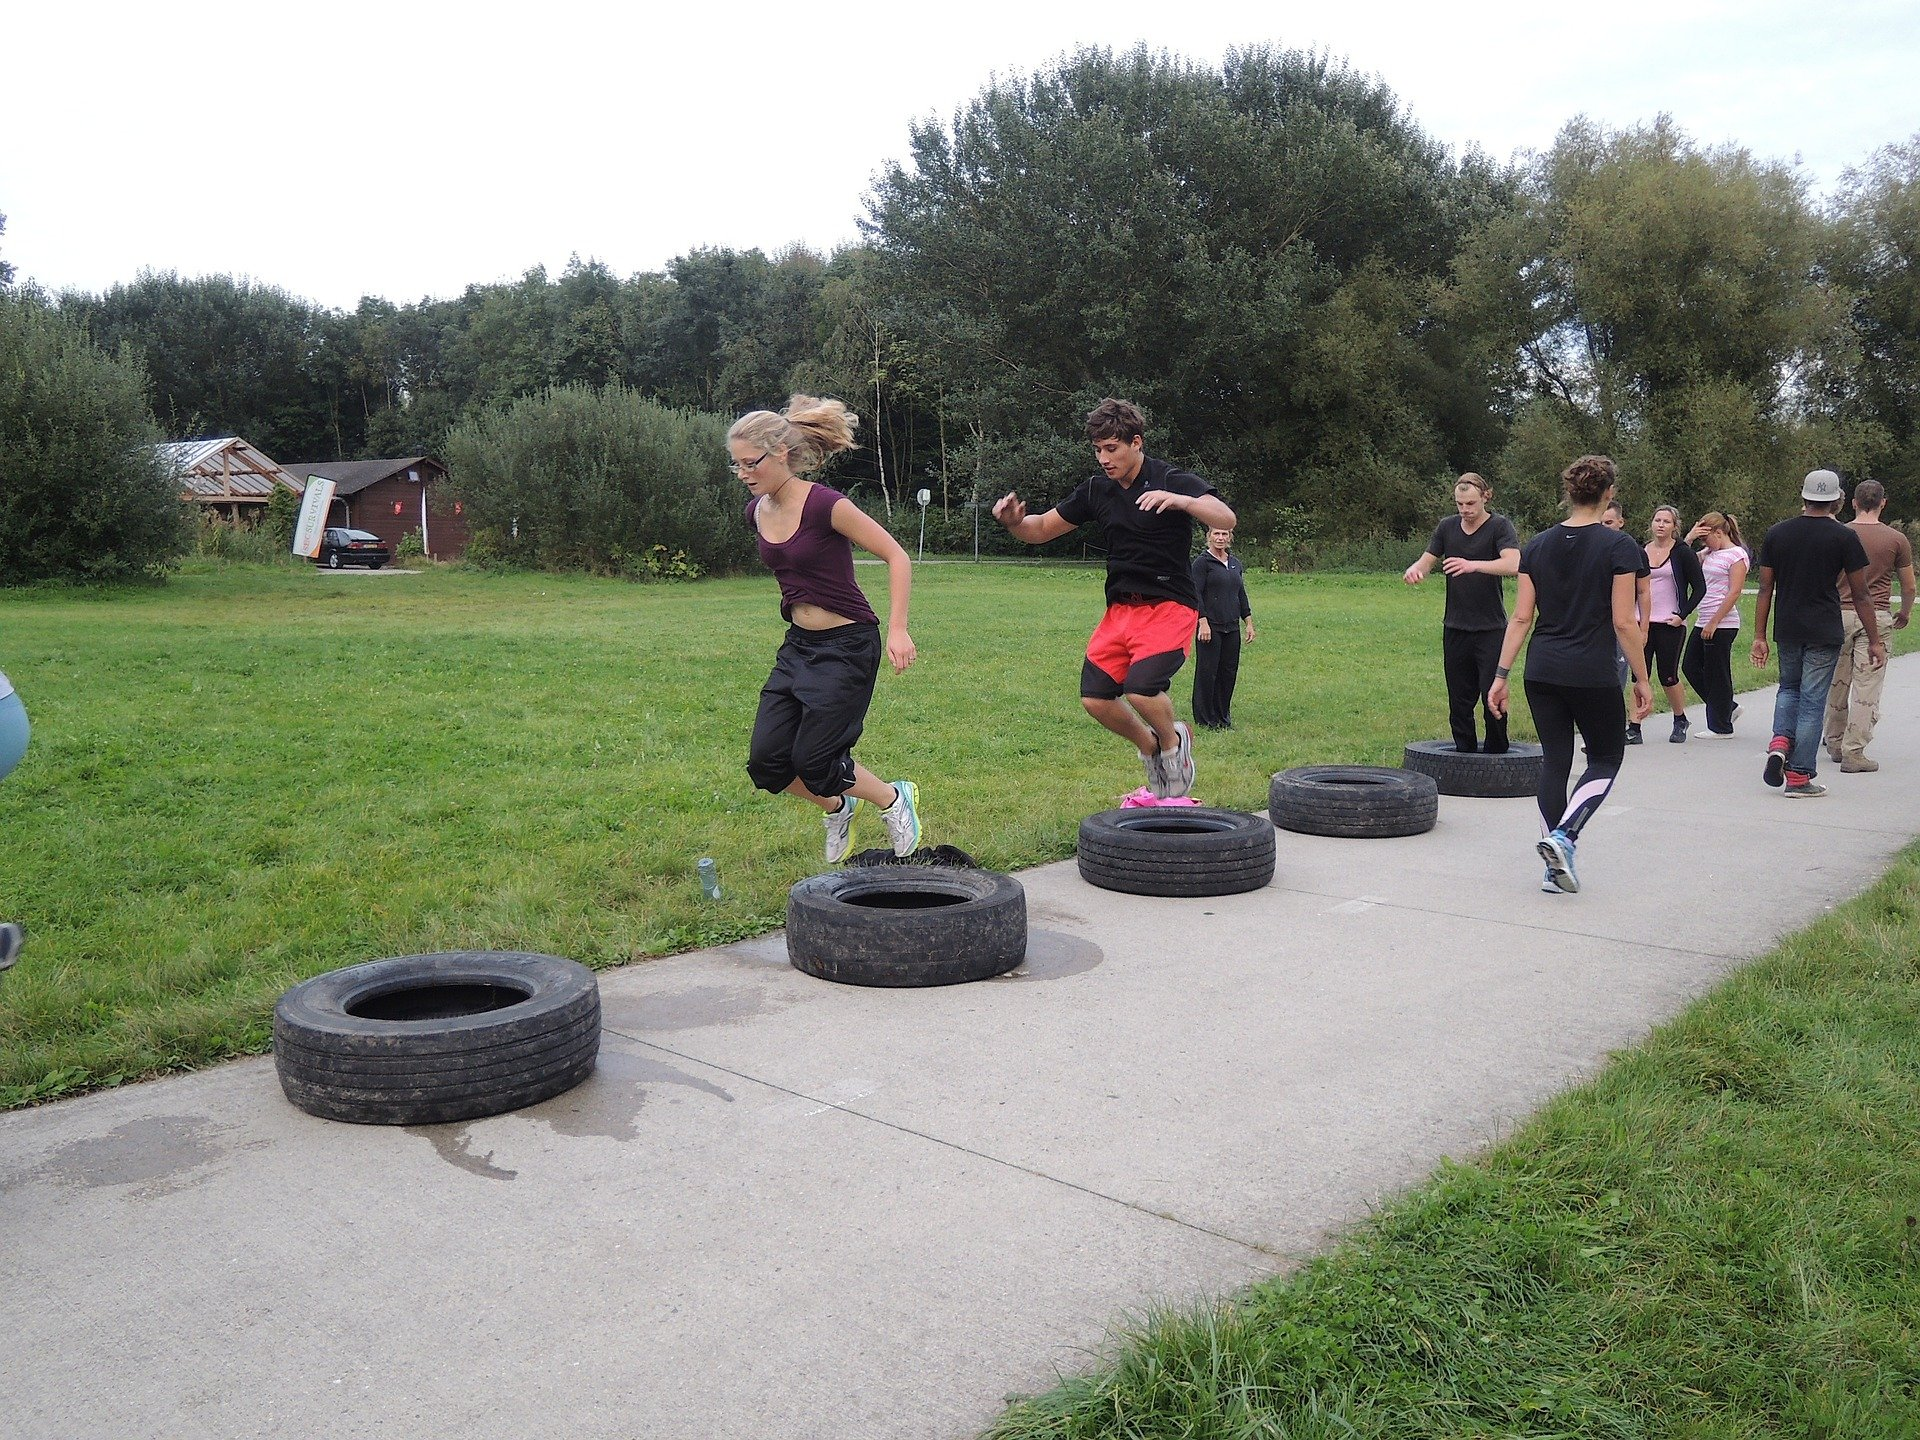 HIIT training is versatile, doesn't require much equipment and can be practiced anywhere